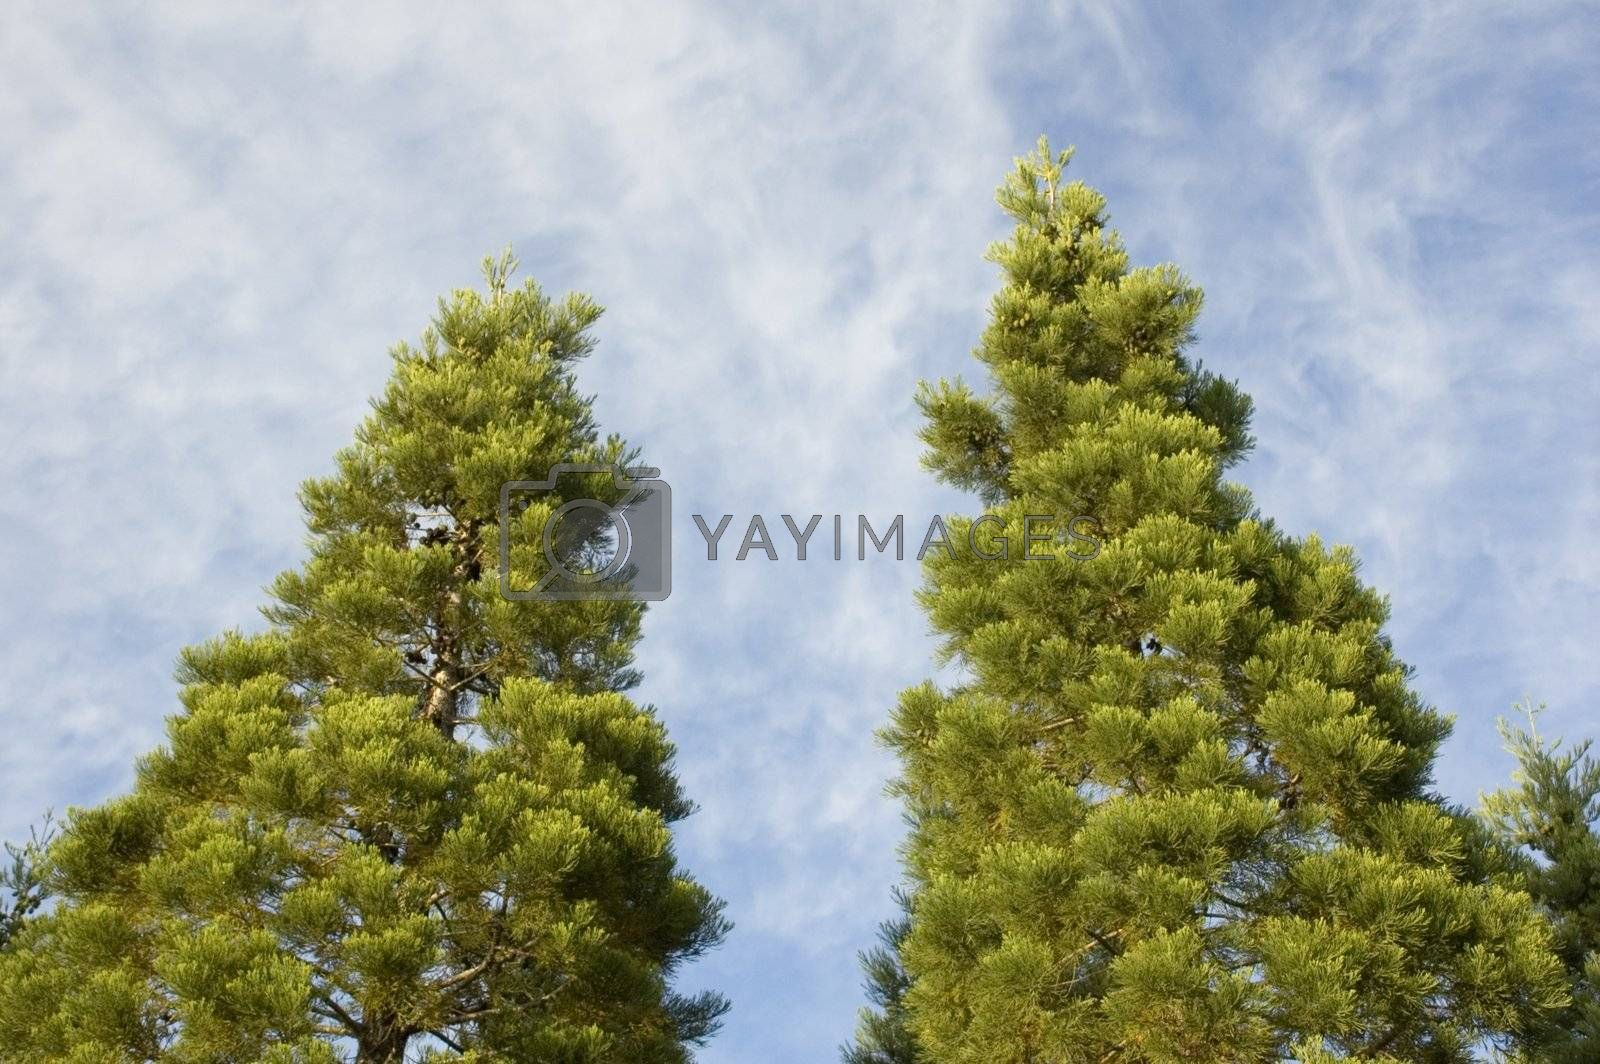 Two pine trees with blue sky and wispy clouds behind them.